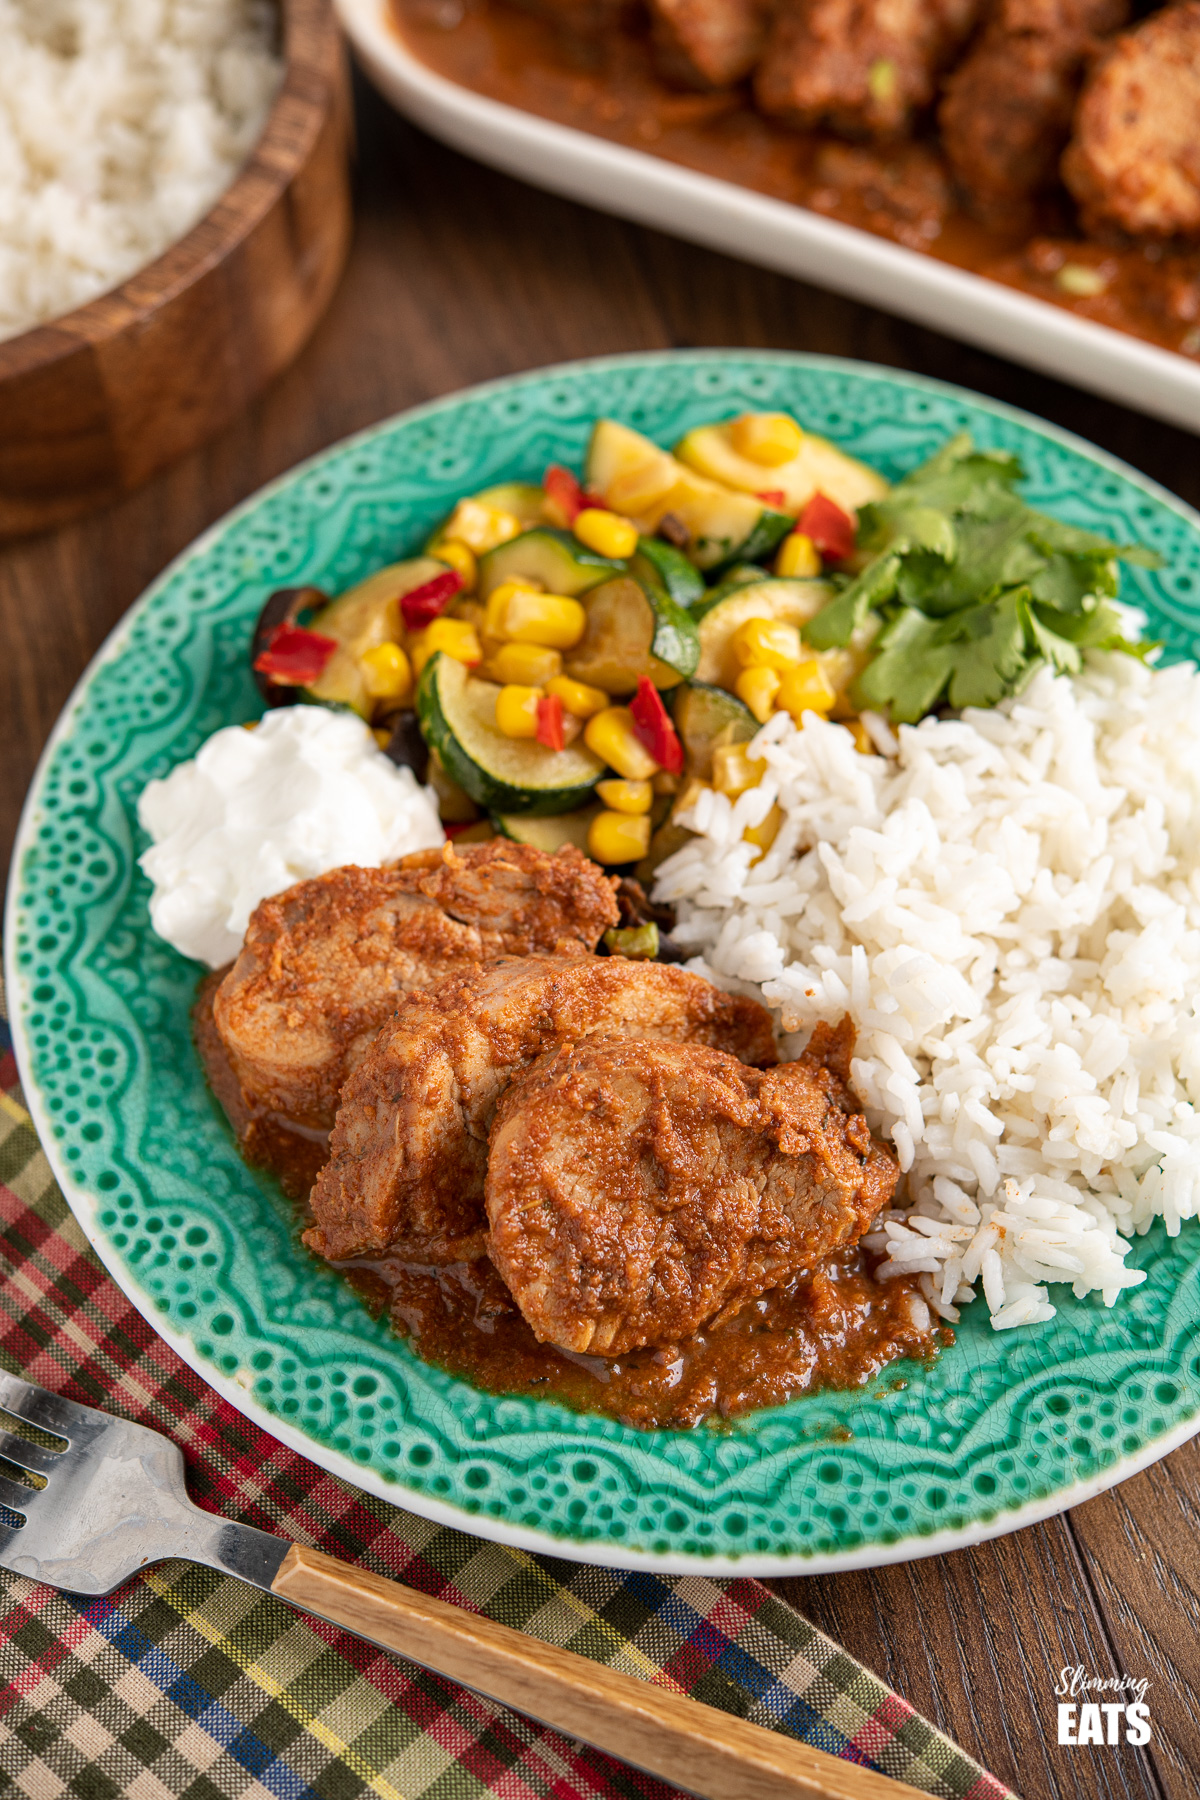 sliced Slow Cooker Cajun Apple Pork Tenderloin on teal plate with sour cream, rice and vegetables